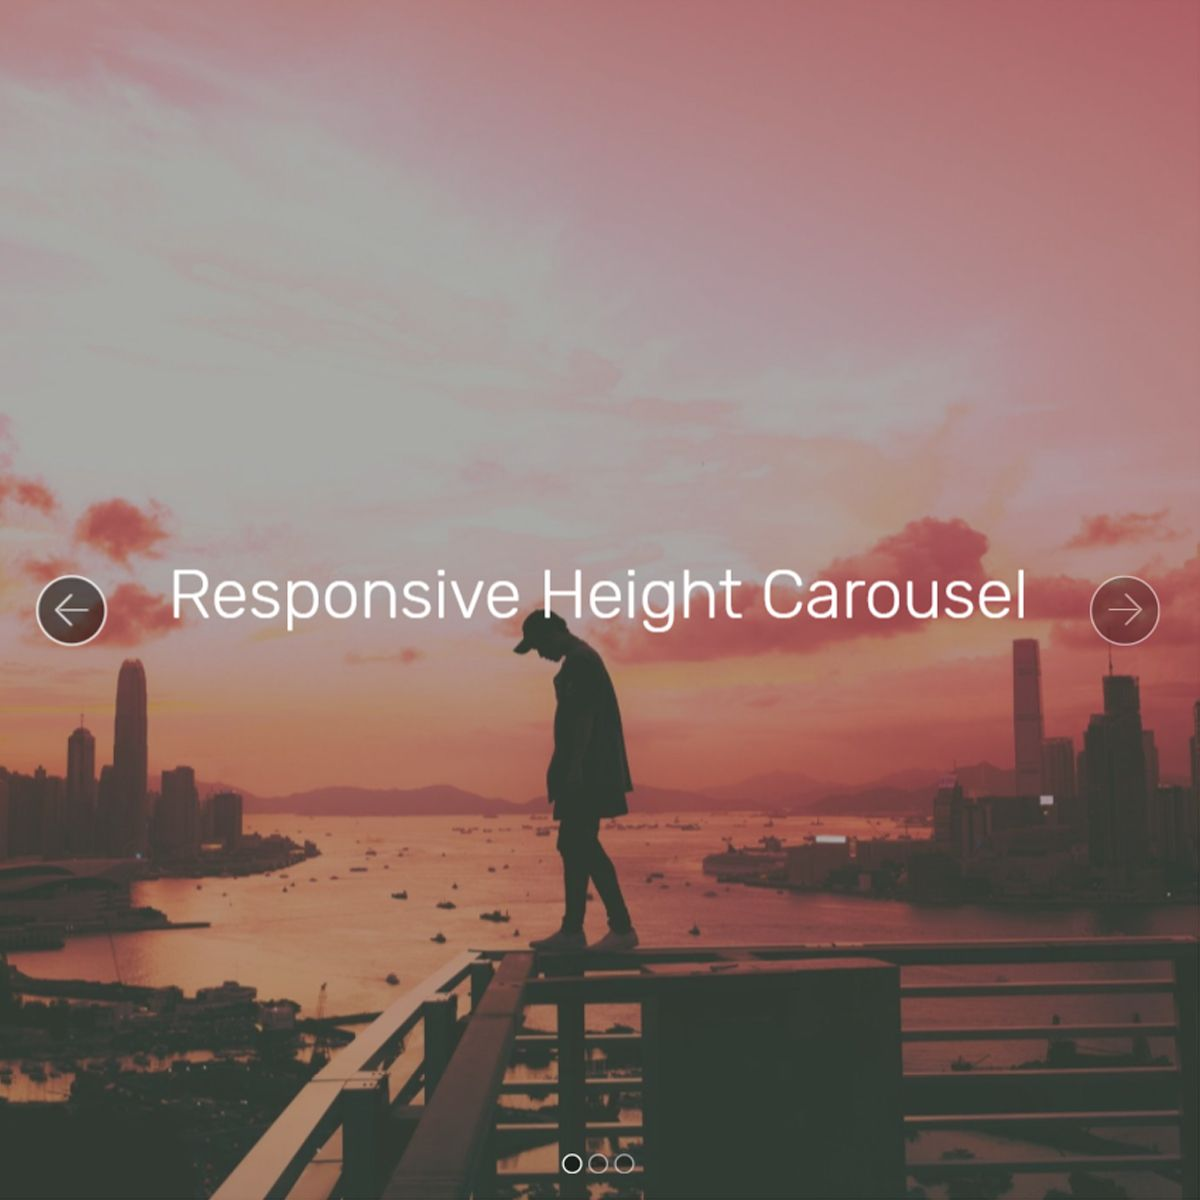 Mobile Bootstrap Picture Carousel